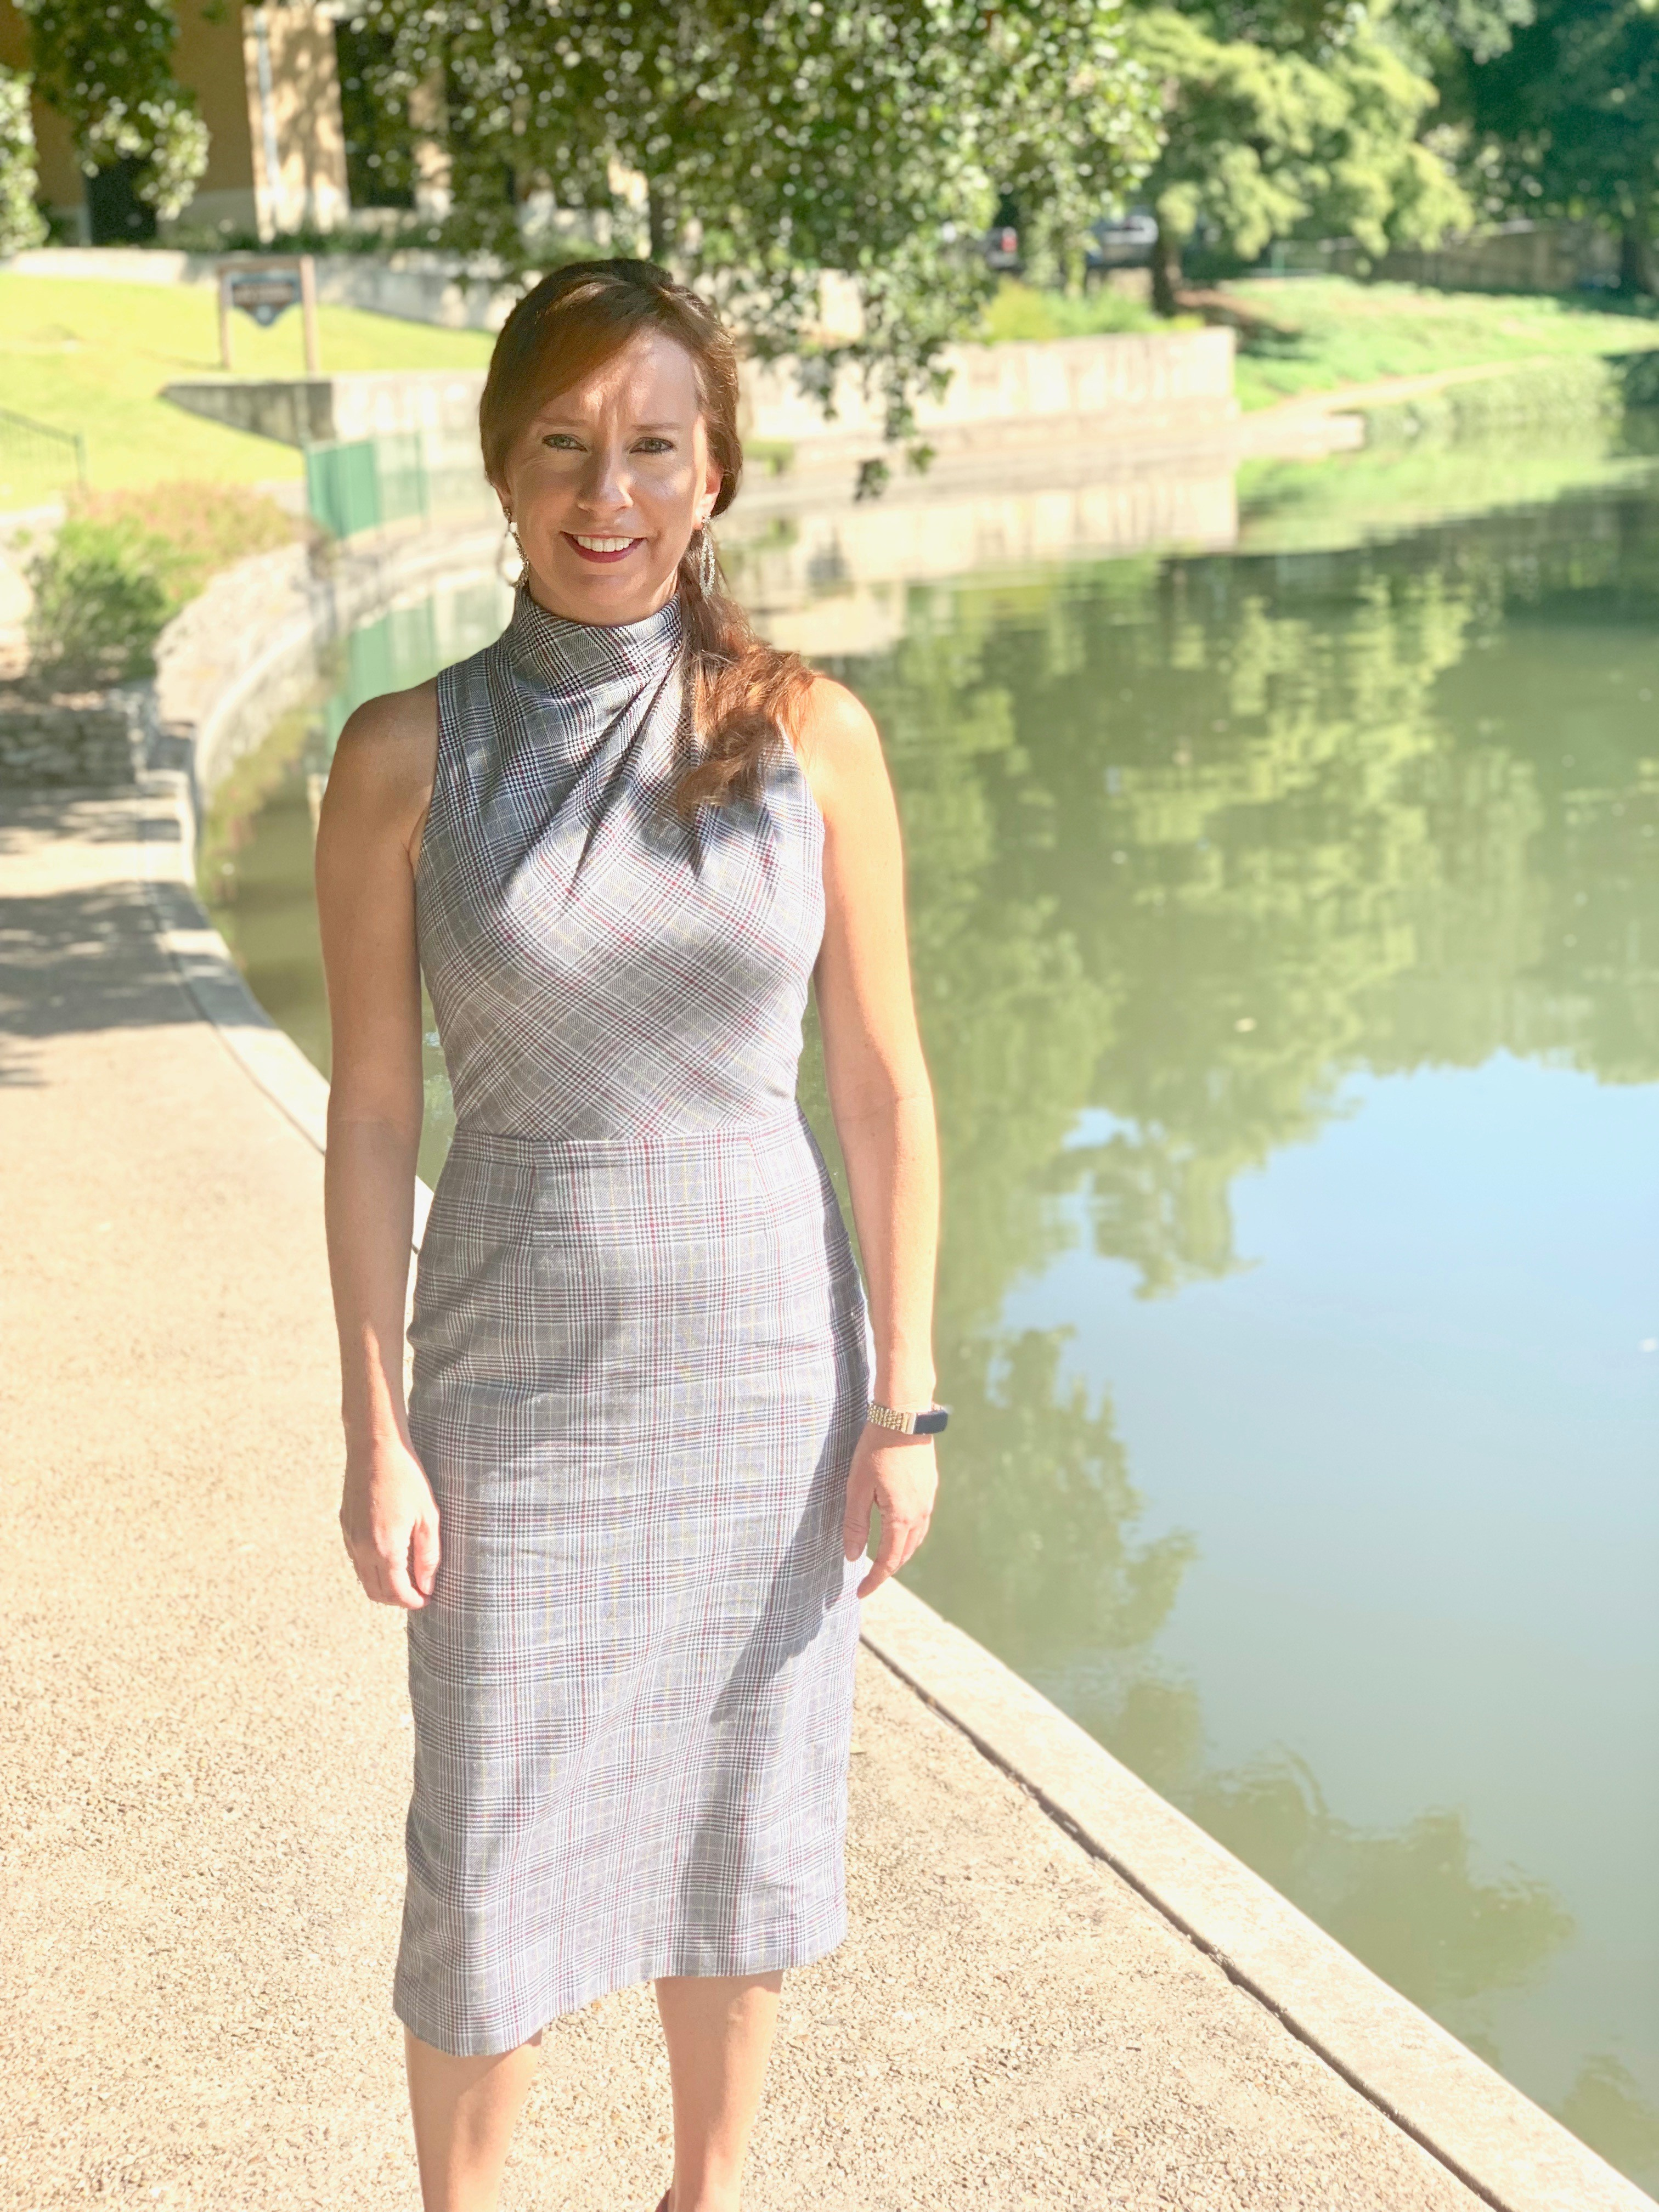 River Authority's Accounting and Budget Services Manager Jennifer Crocker